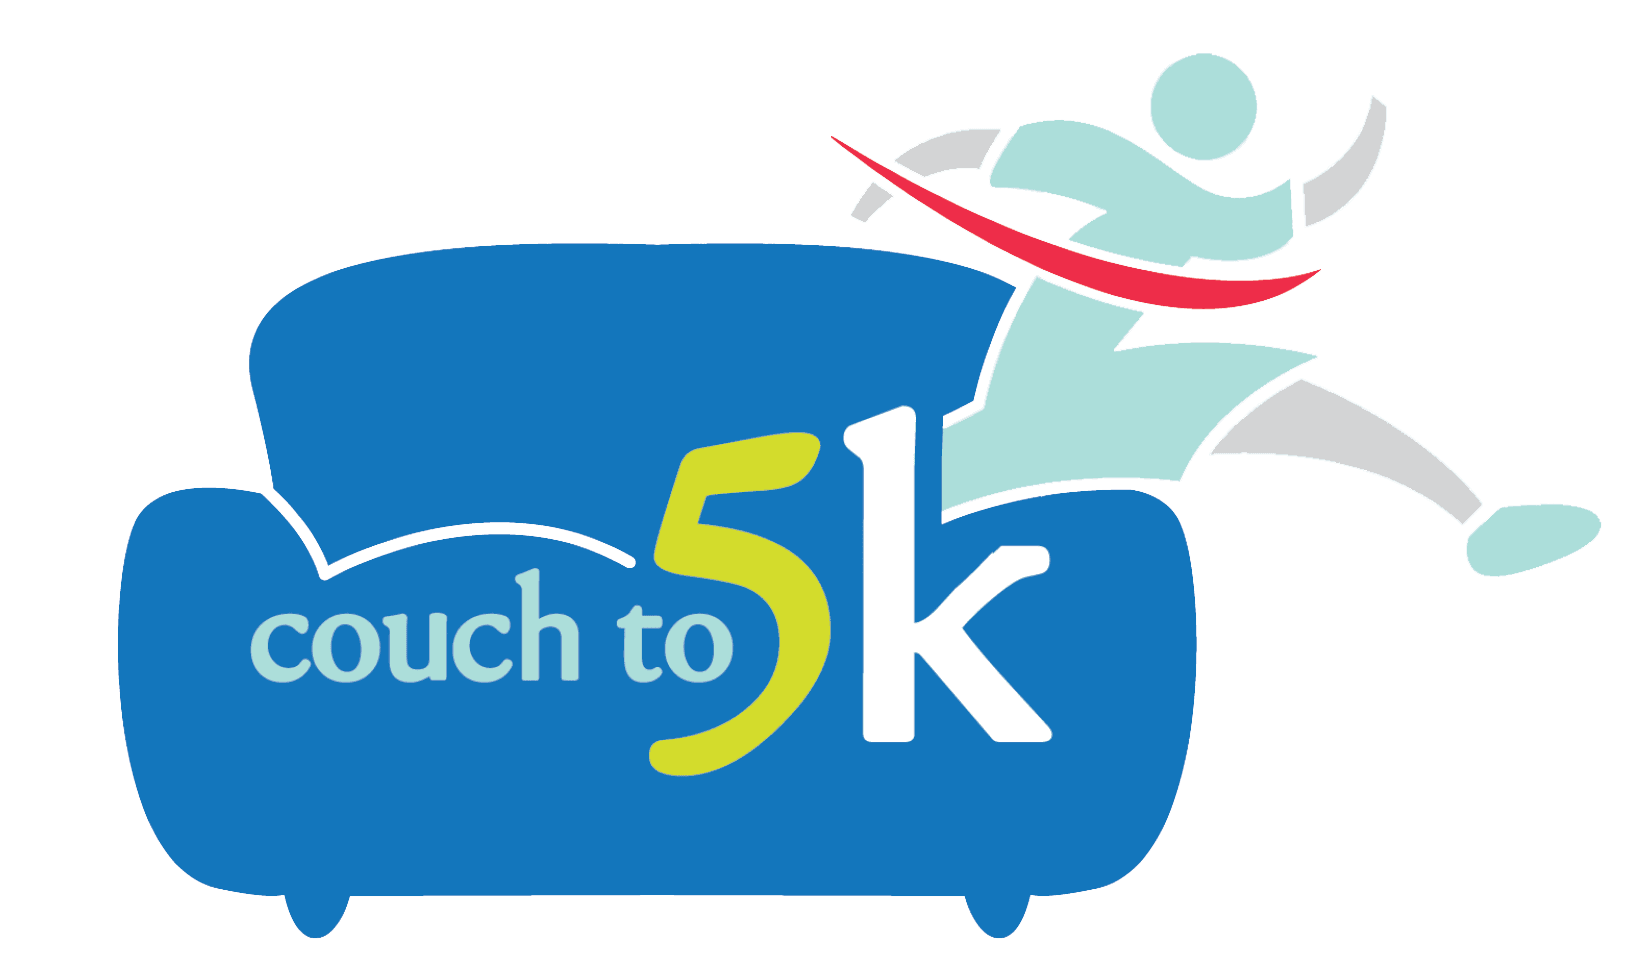 Couch to 5K logo